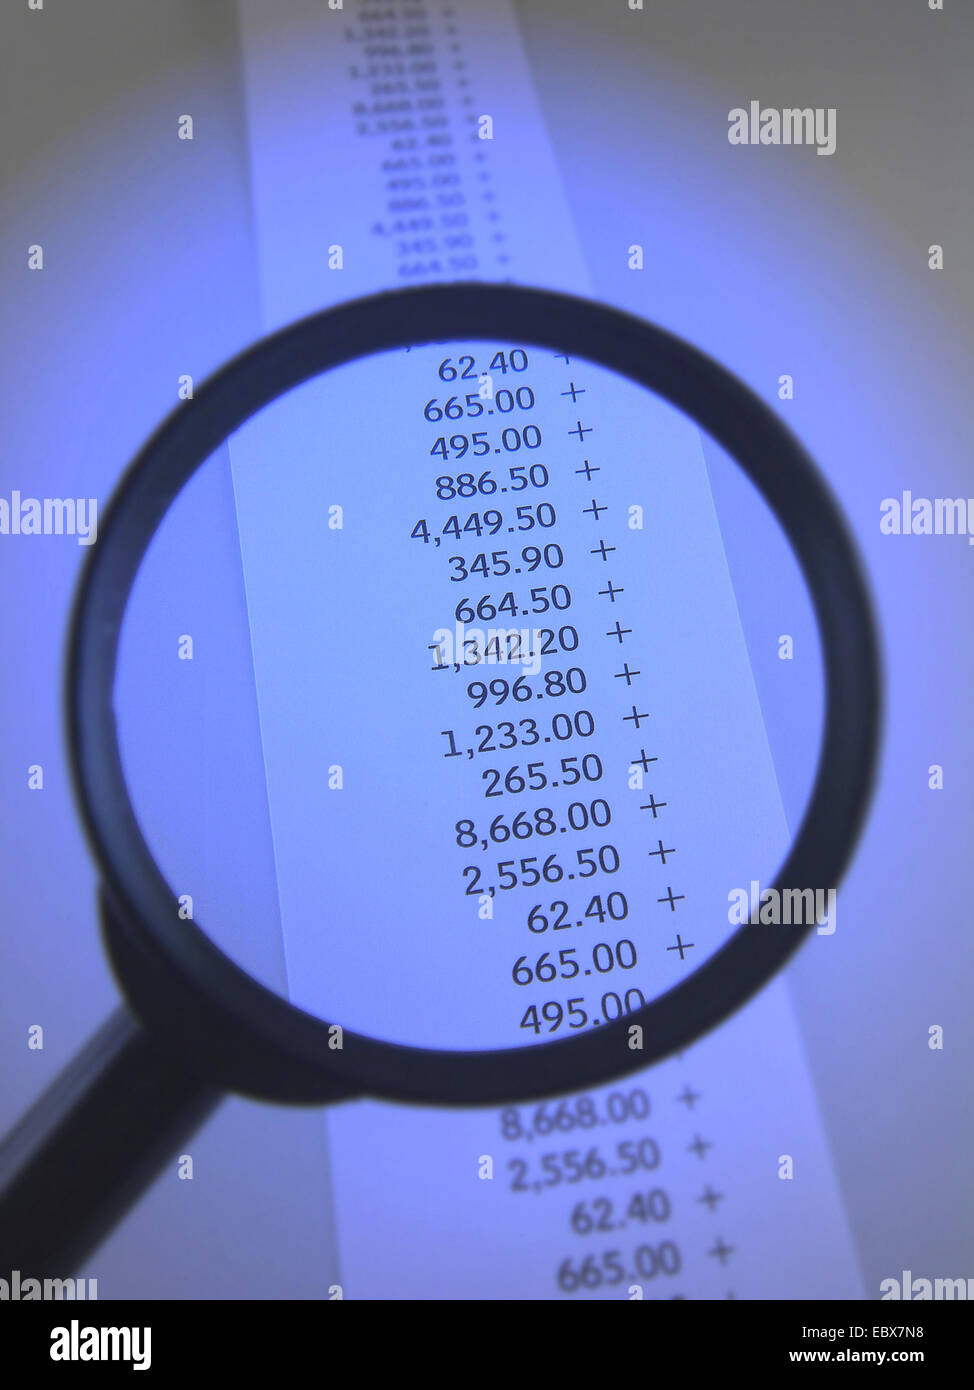 numerical sequence on a voucher - Stock Image